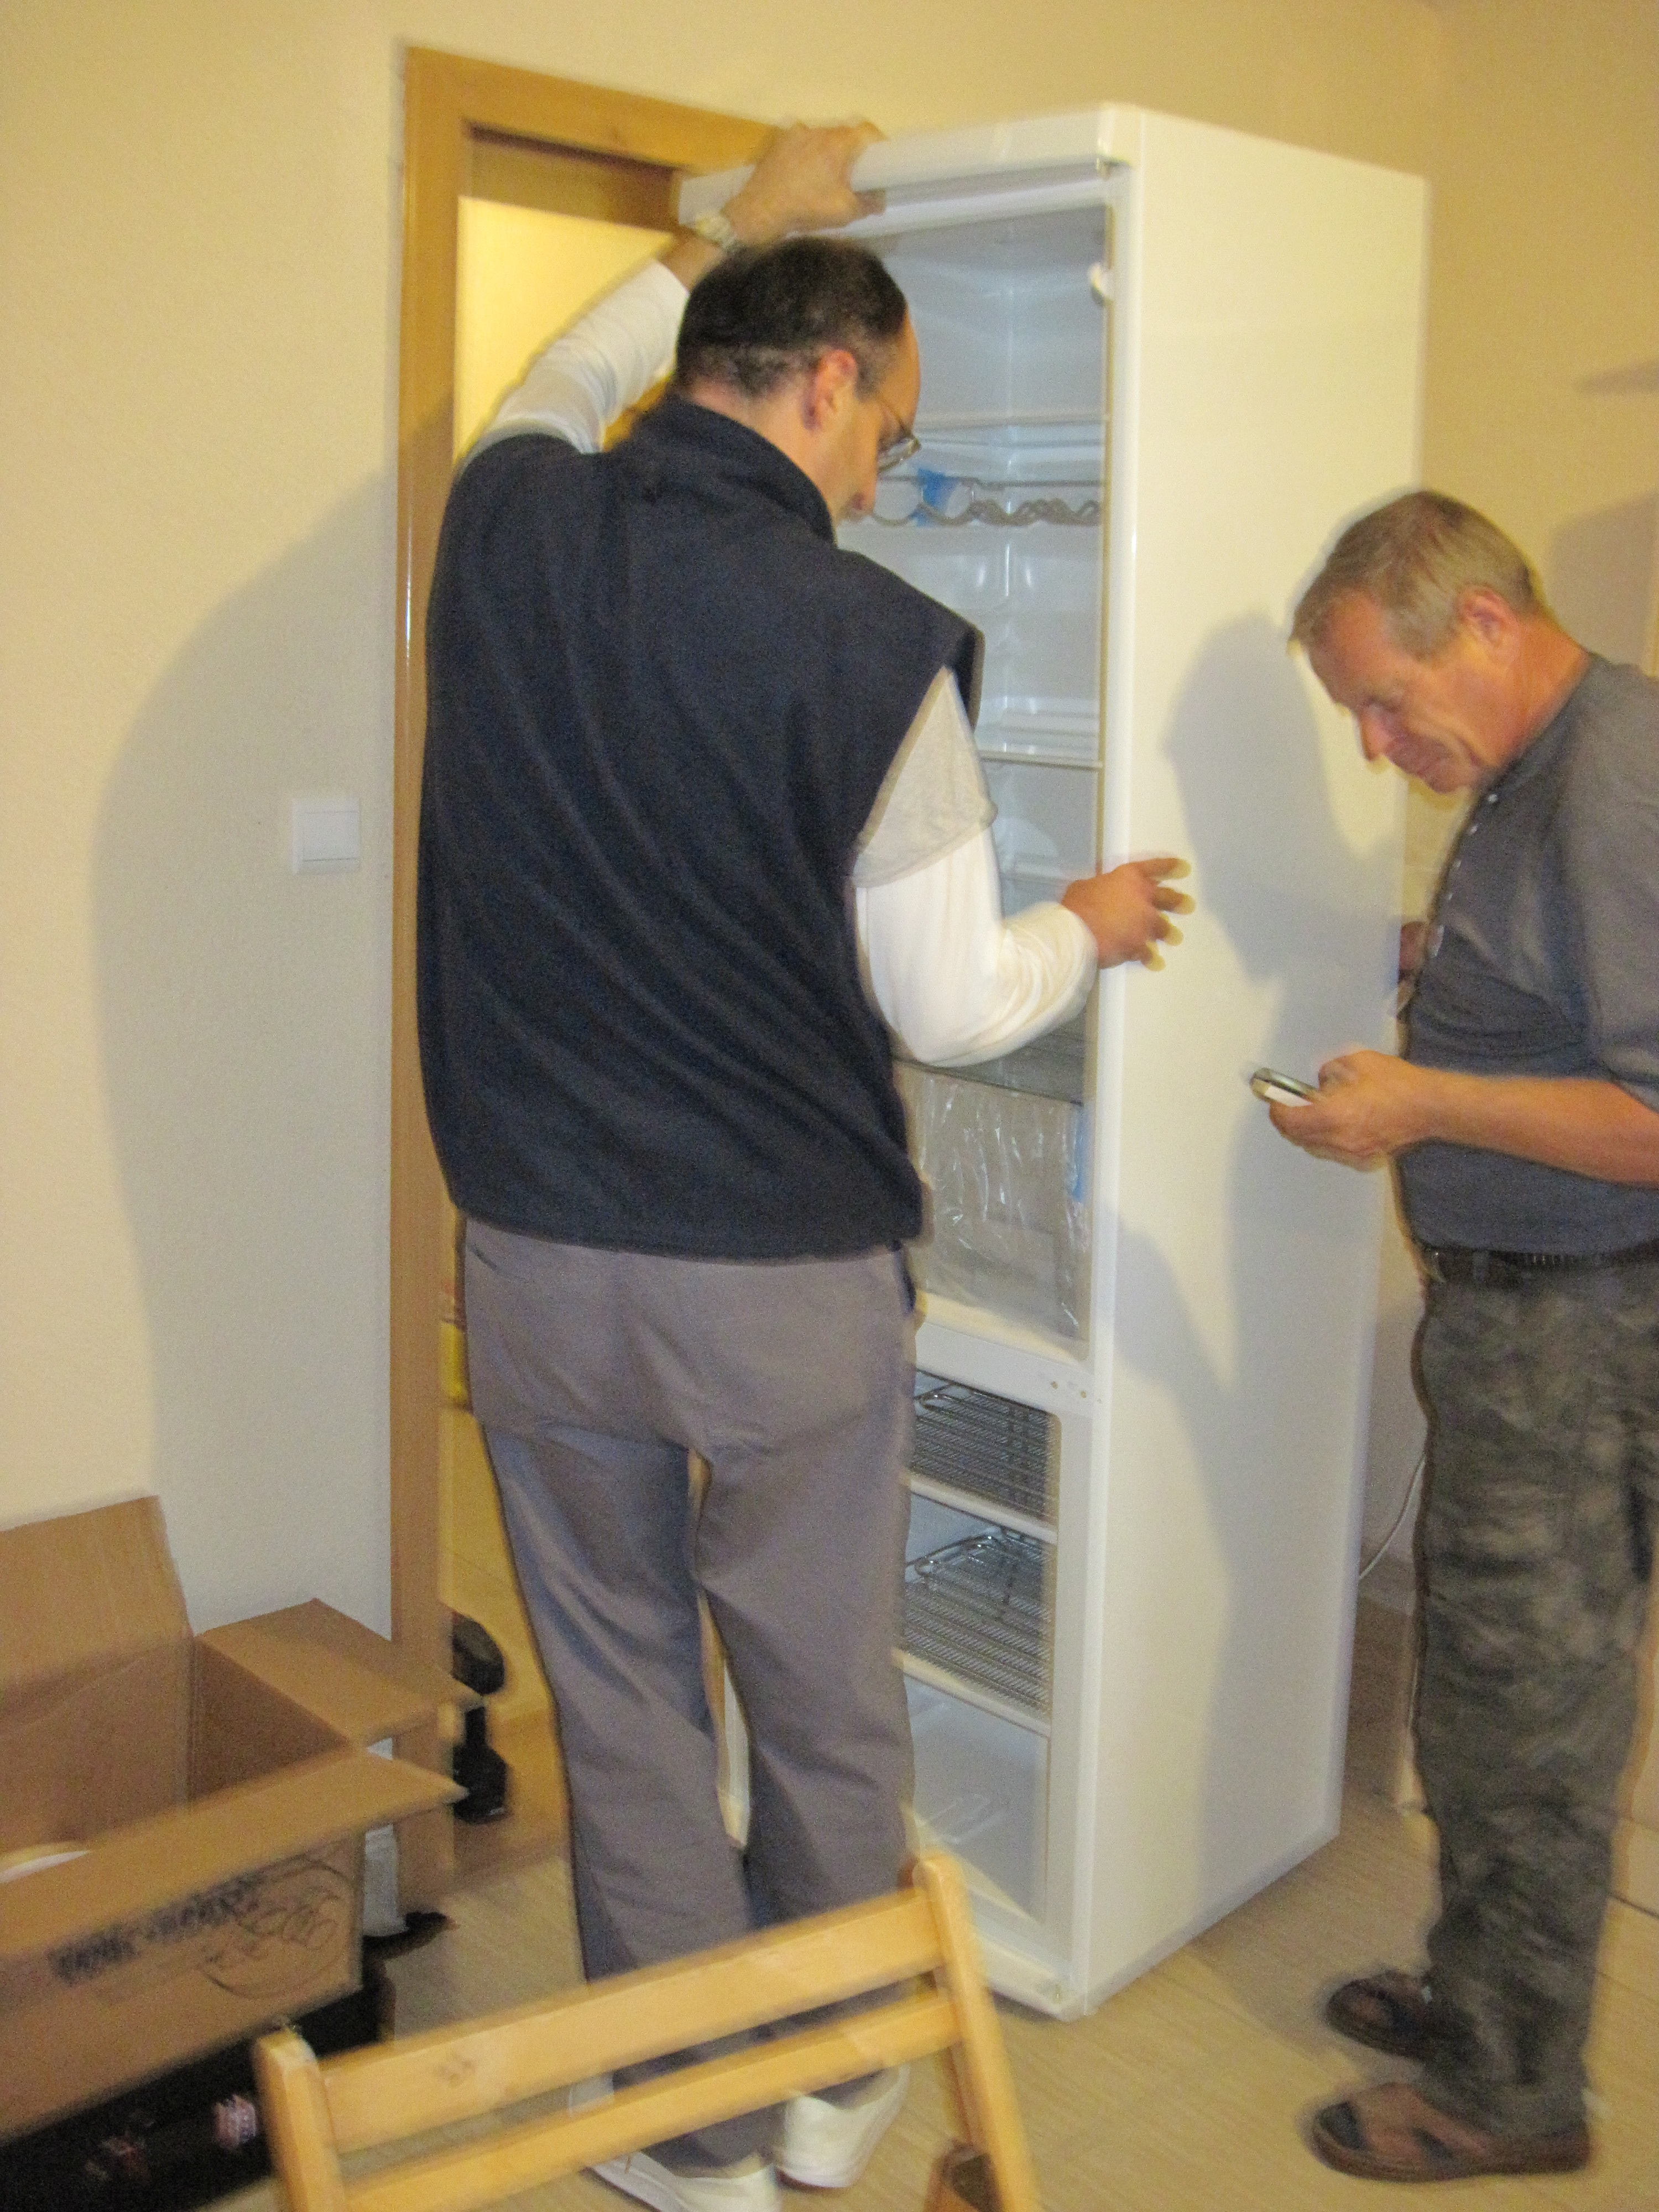 Tibi and Gusti had to remove the fridge door in order to move it so I can easily open the door.  The delivery men somehow got it in place but then the fridge door, and the kitchen door hit each other!  The men moved it across the room for me.